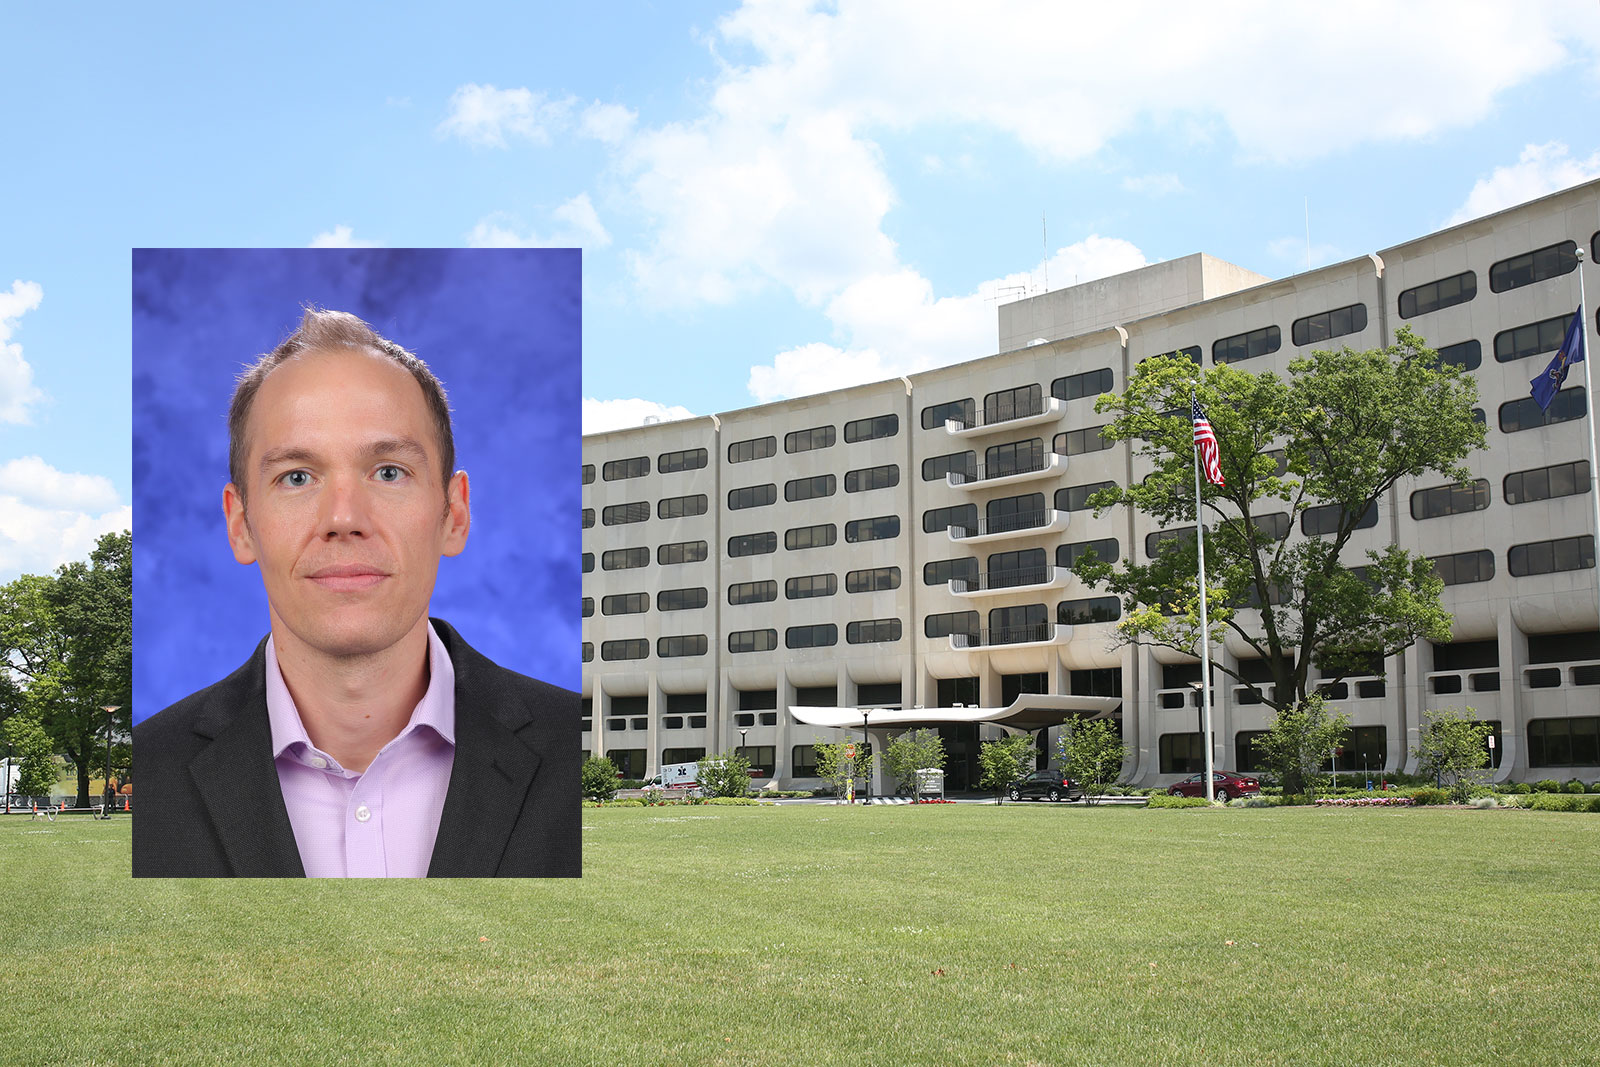 A head-and-shoulders professional photo of Dr. Guy Townsend is seen superimposed on a photo of Penn State College of Medicine's Crescent building in Hershey, PA.